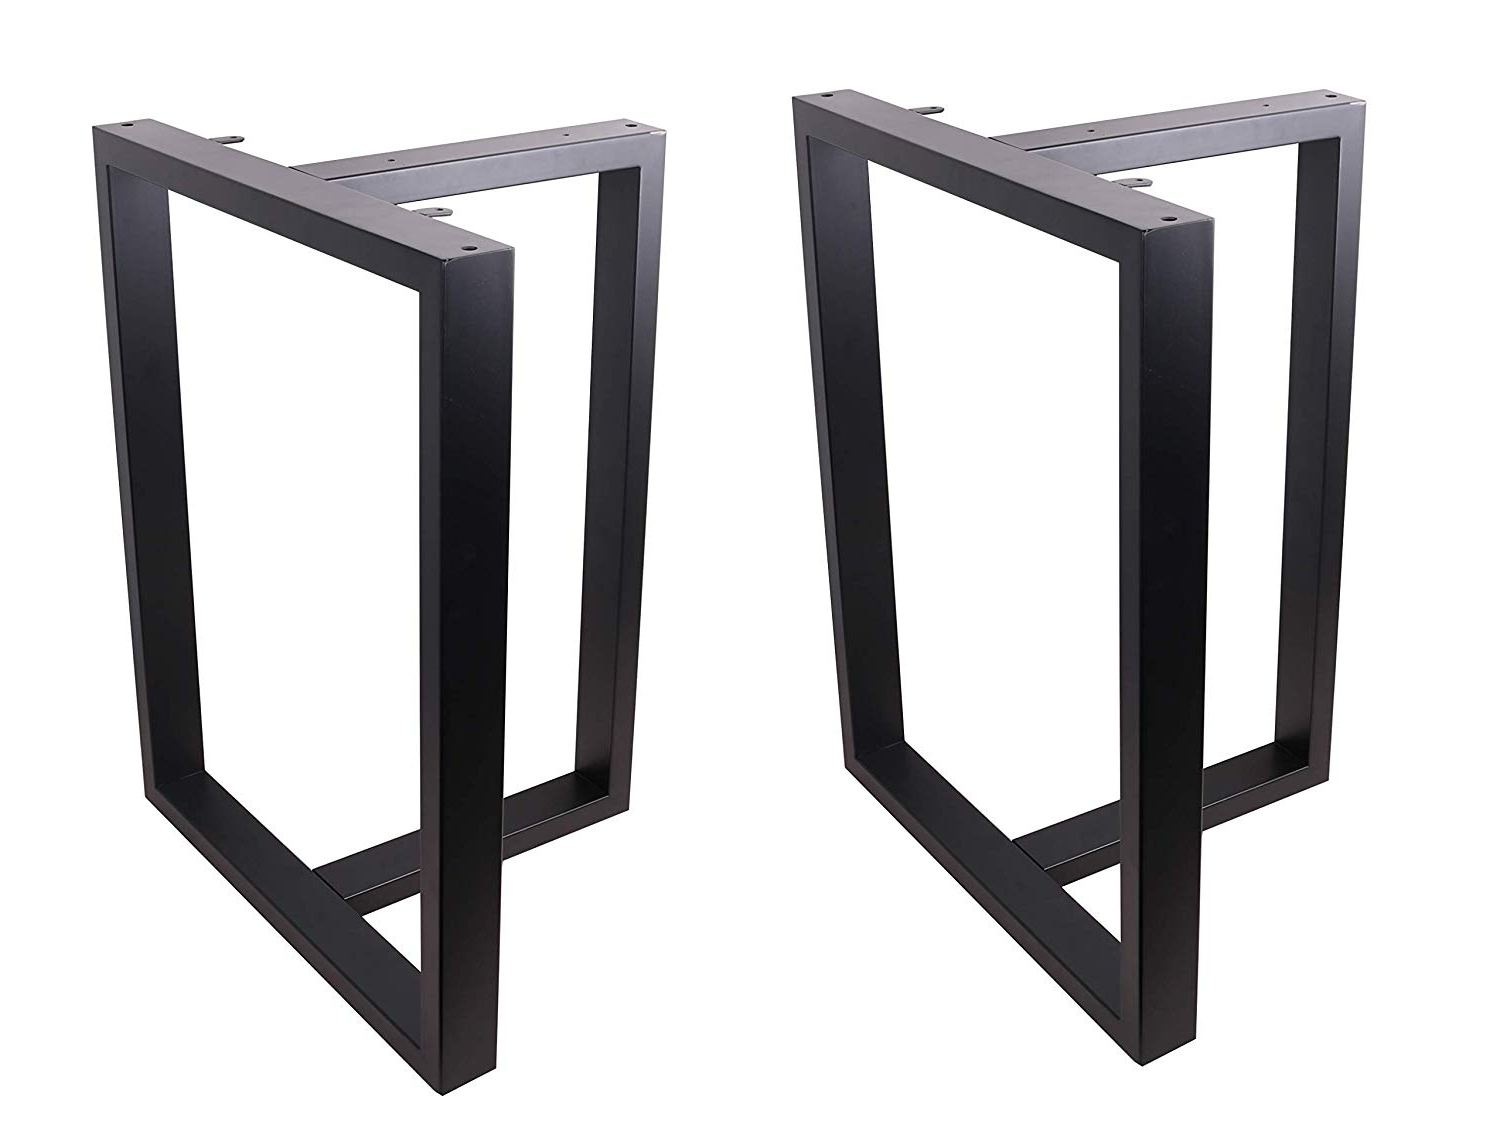 "Most Current Dining Tables With Black U Legs Inside Eclv 28"" Dining Table Legs, T Shaped Steel Table Legs, Office Table Legs,computer Desk Legs,industrial Kitchen Table Legs,set Of 2,black (View 18 of 25)"